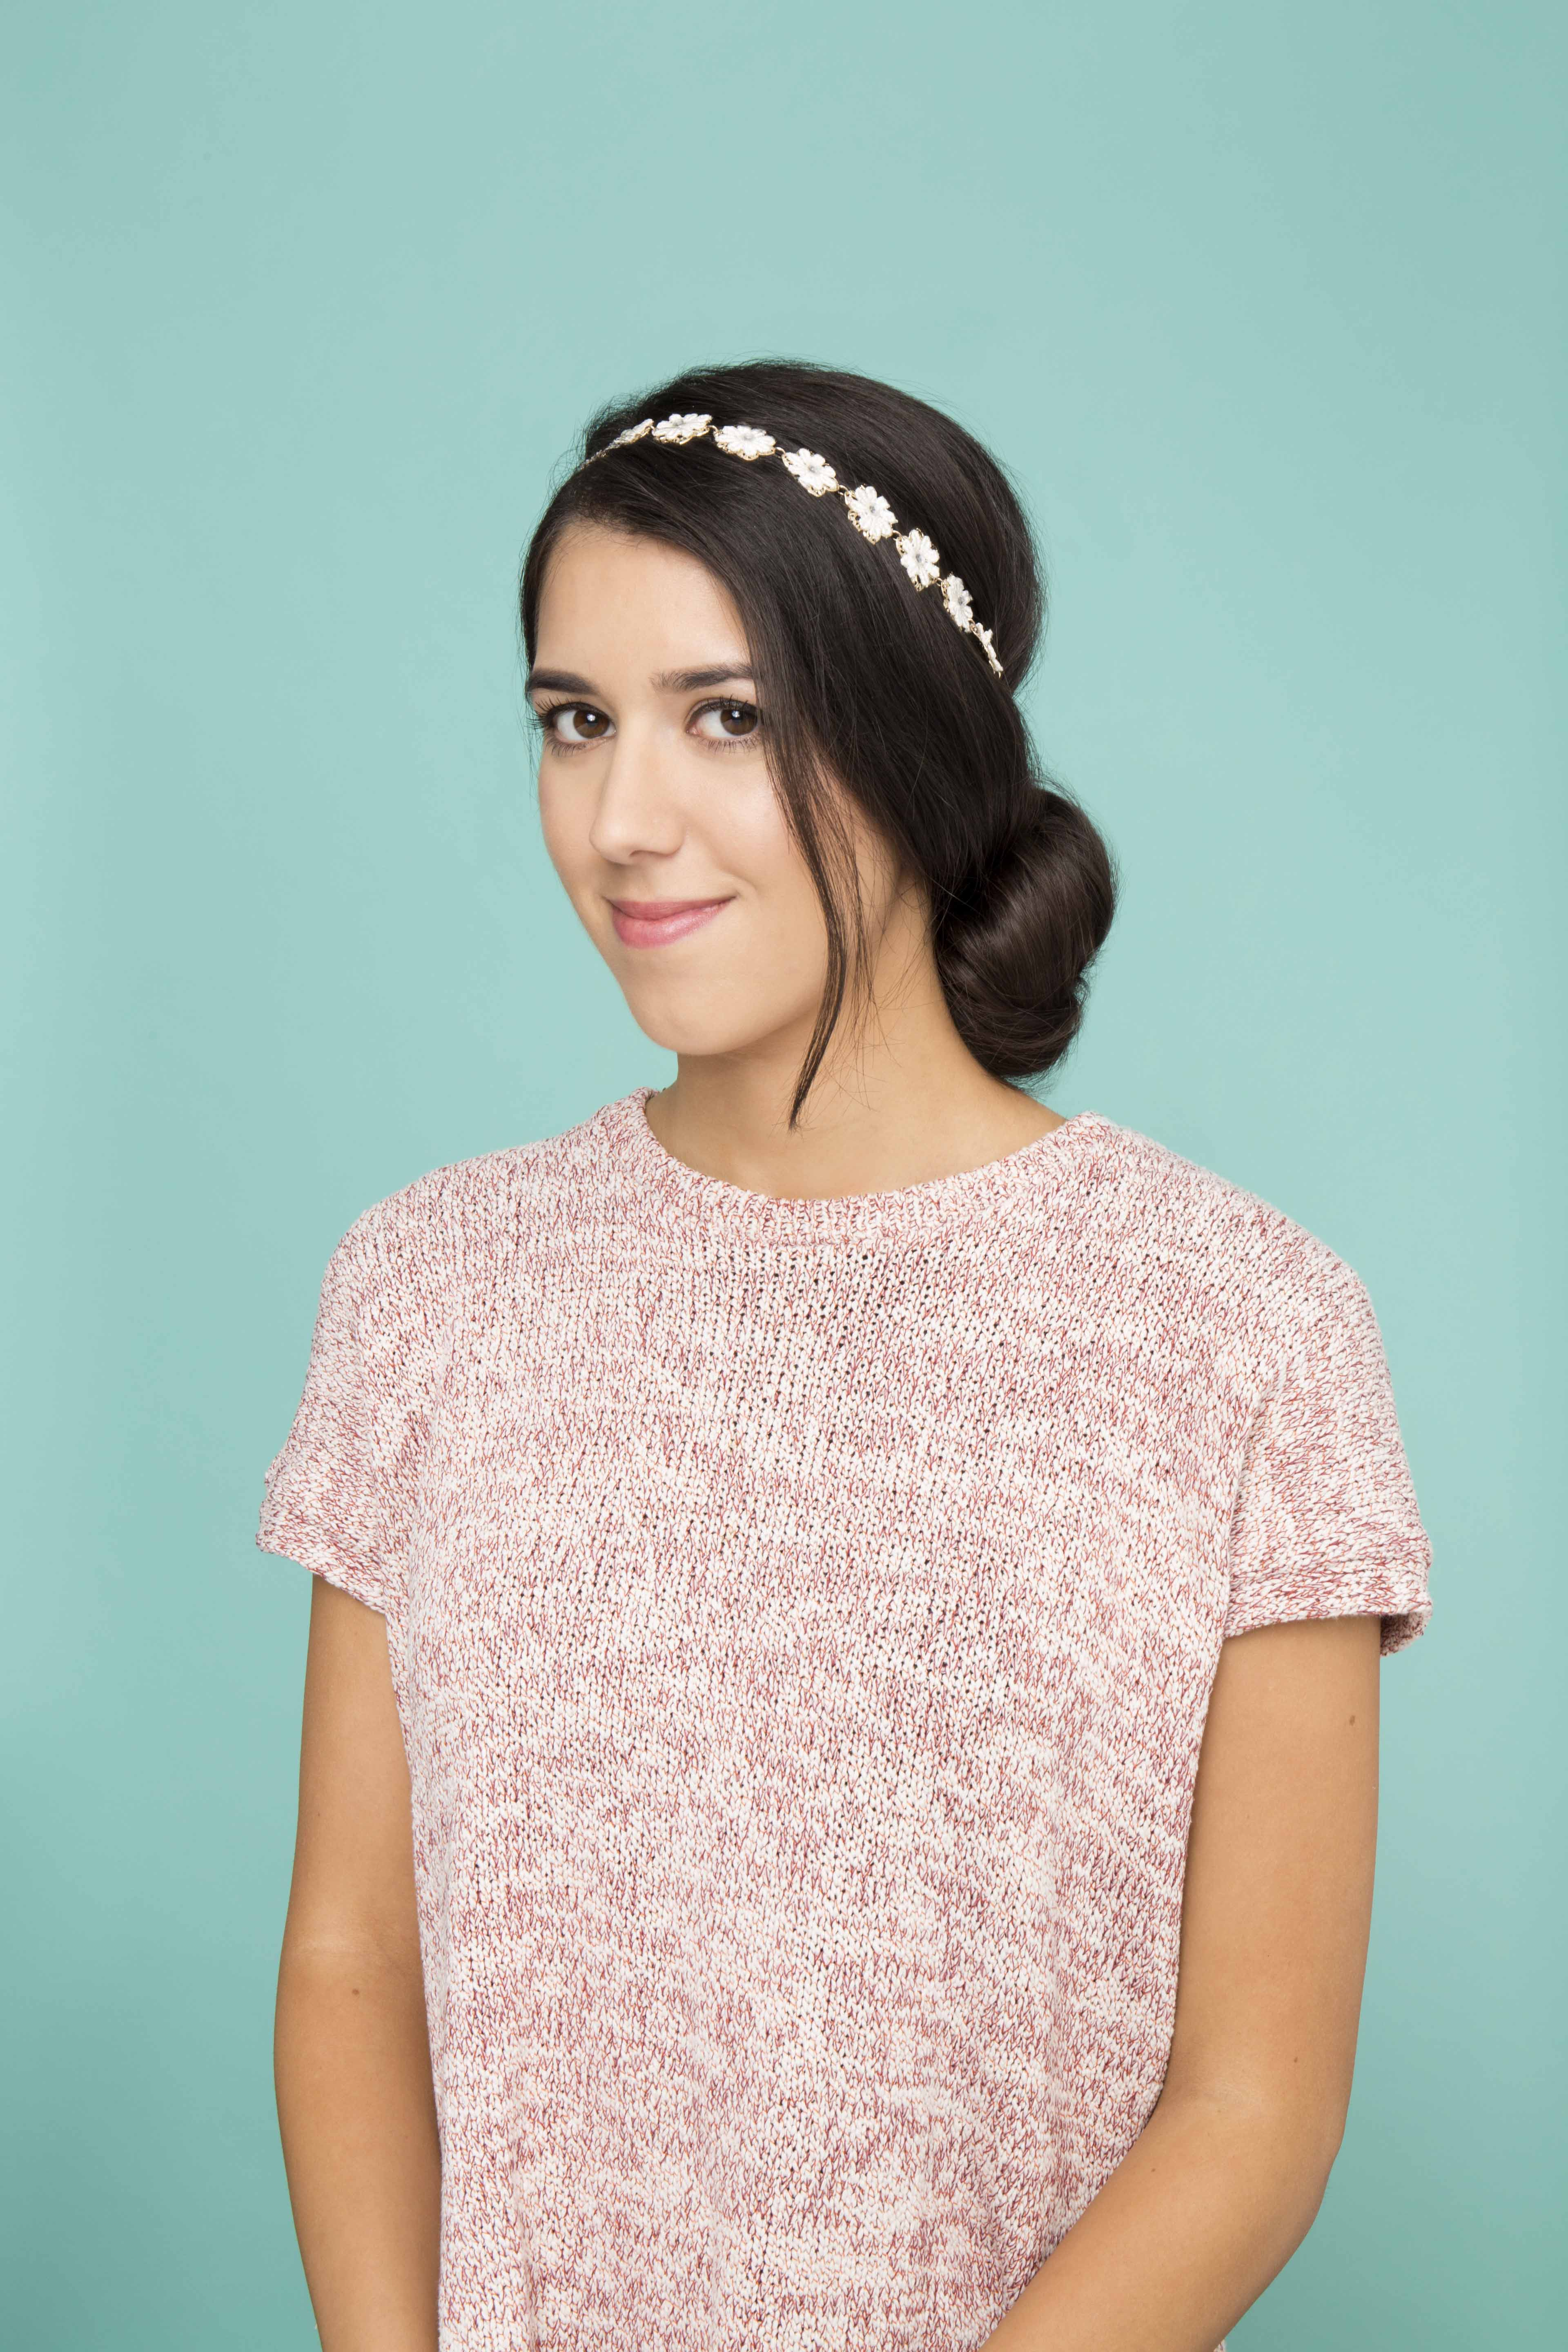 accessorized low chignon dark hair